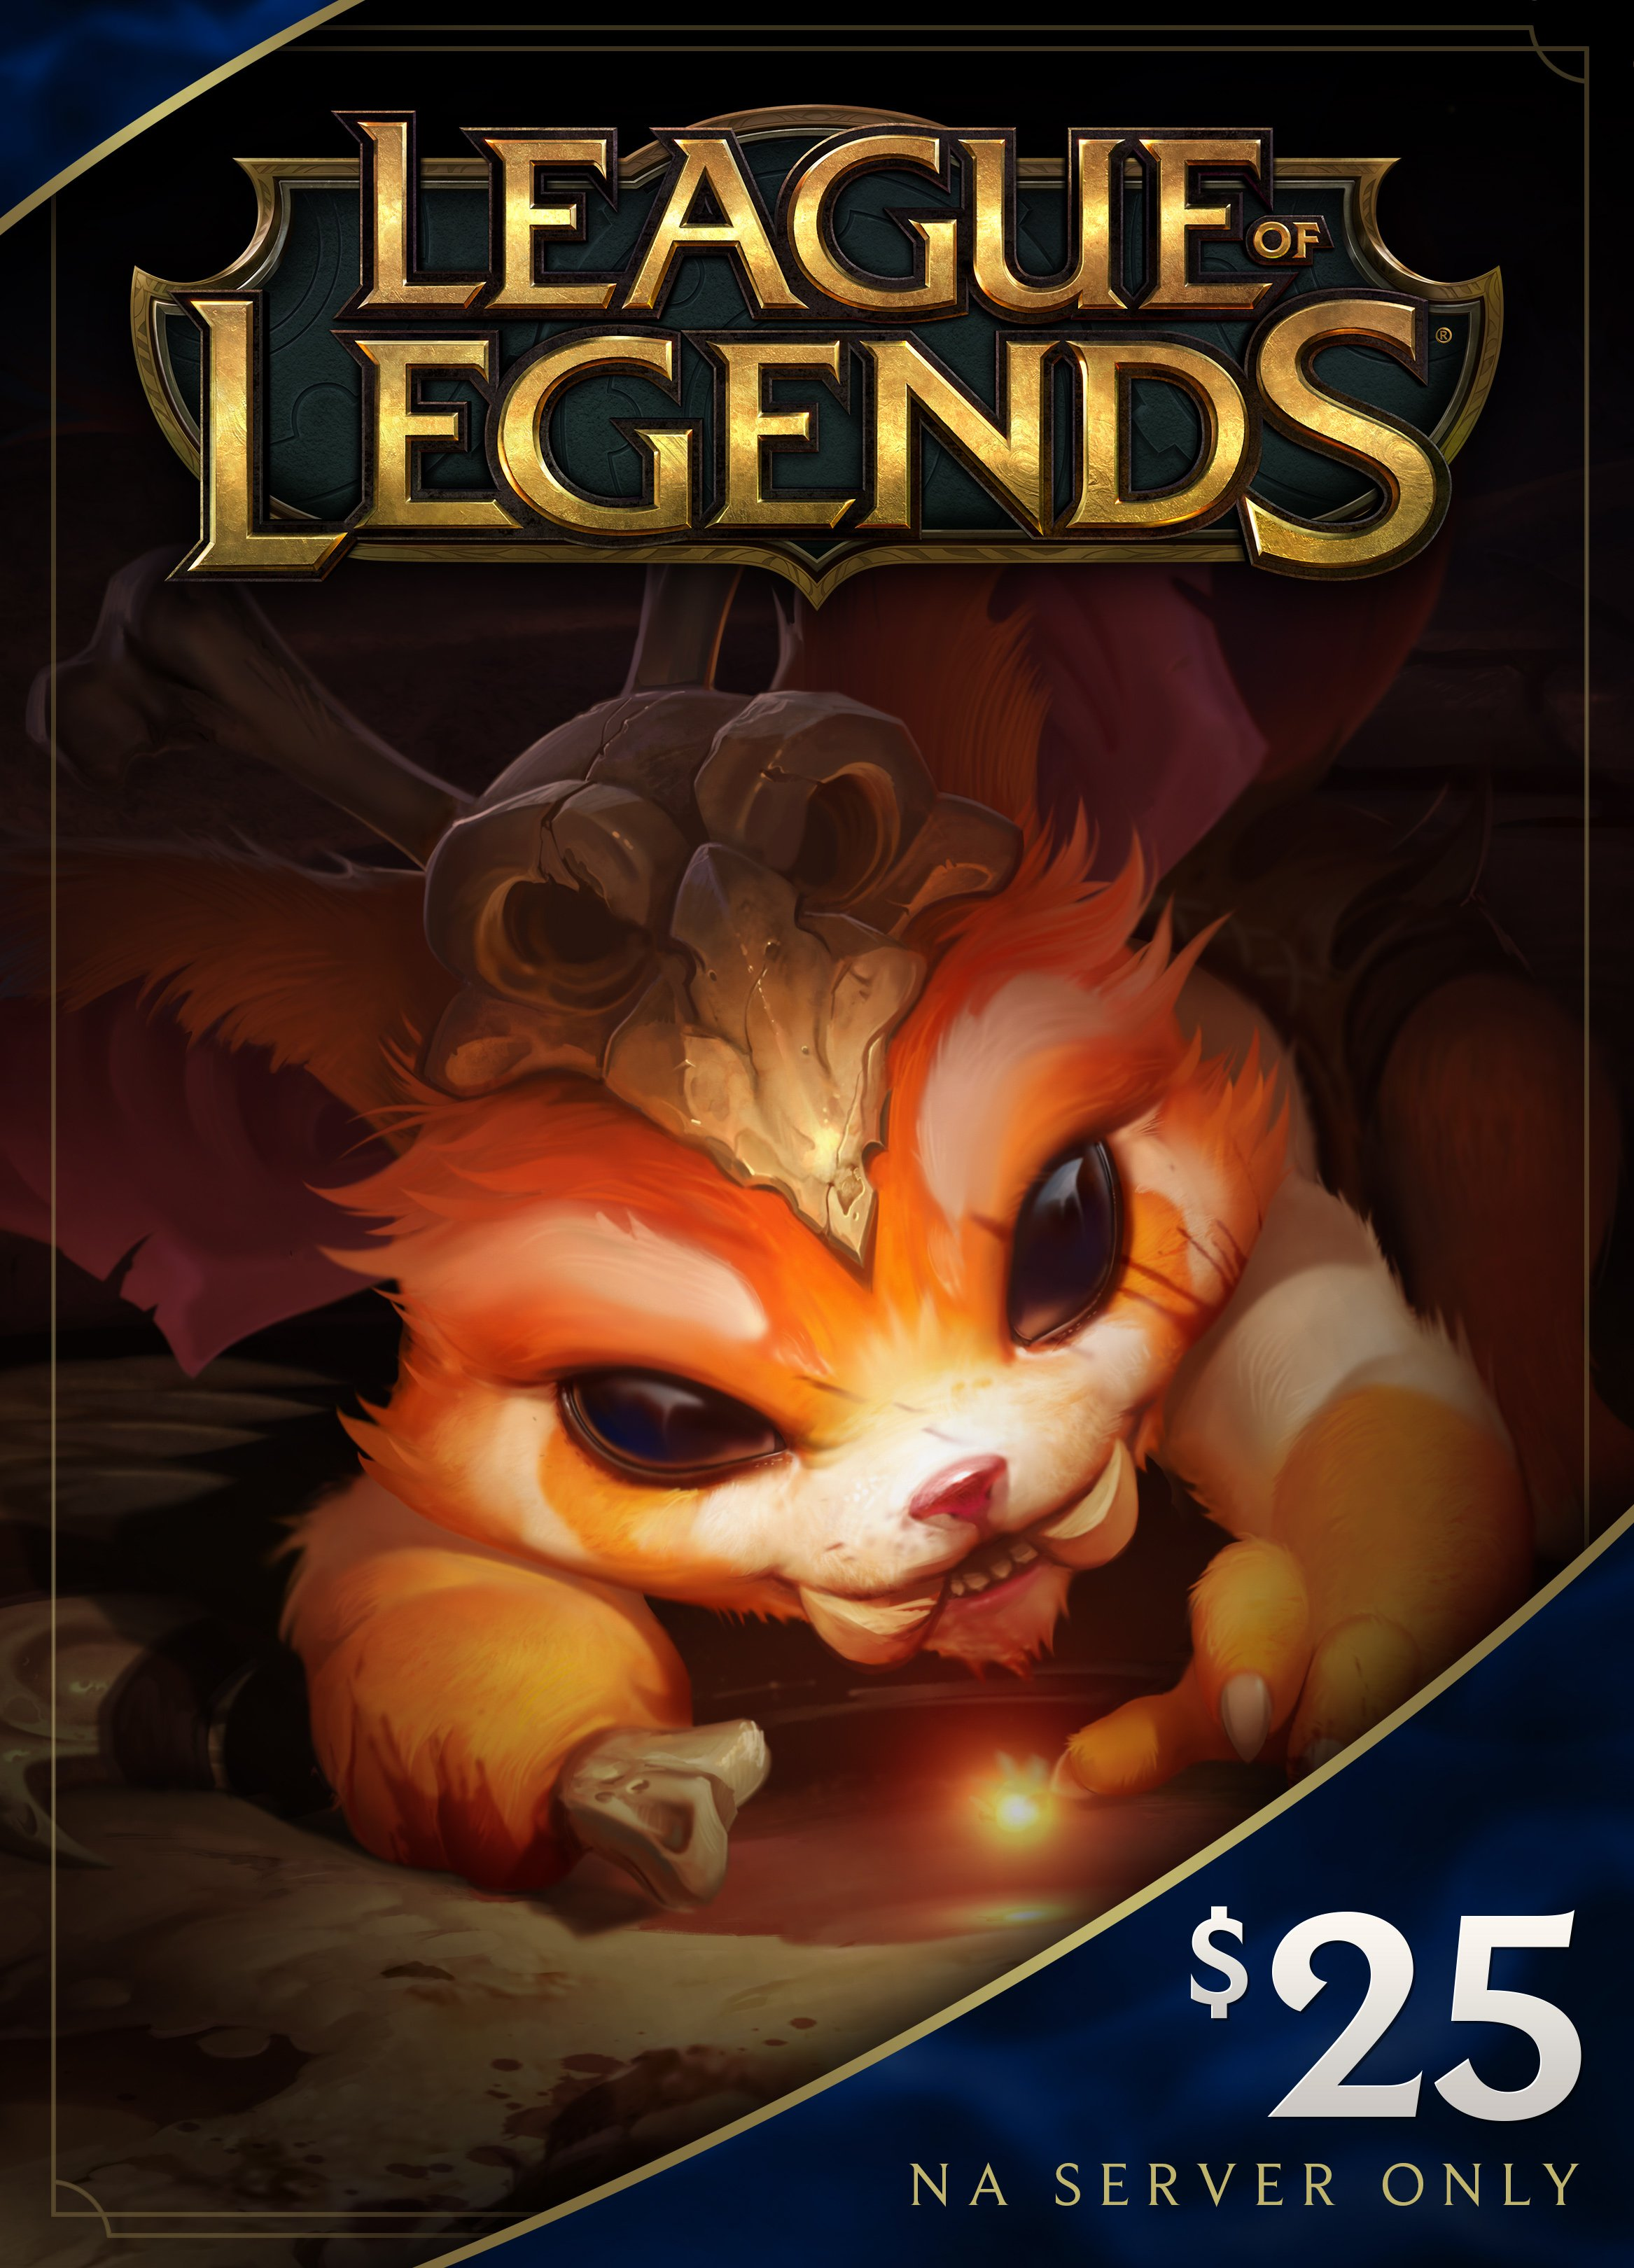 League of Legends $25 Gift Card - 3500 Riot Points - NA Server Only [Online Game Code] Million Gift Chest